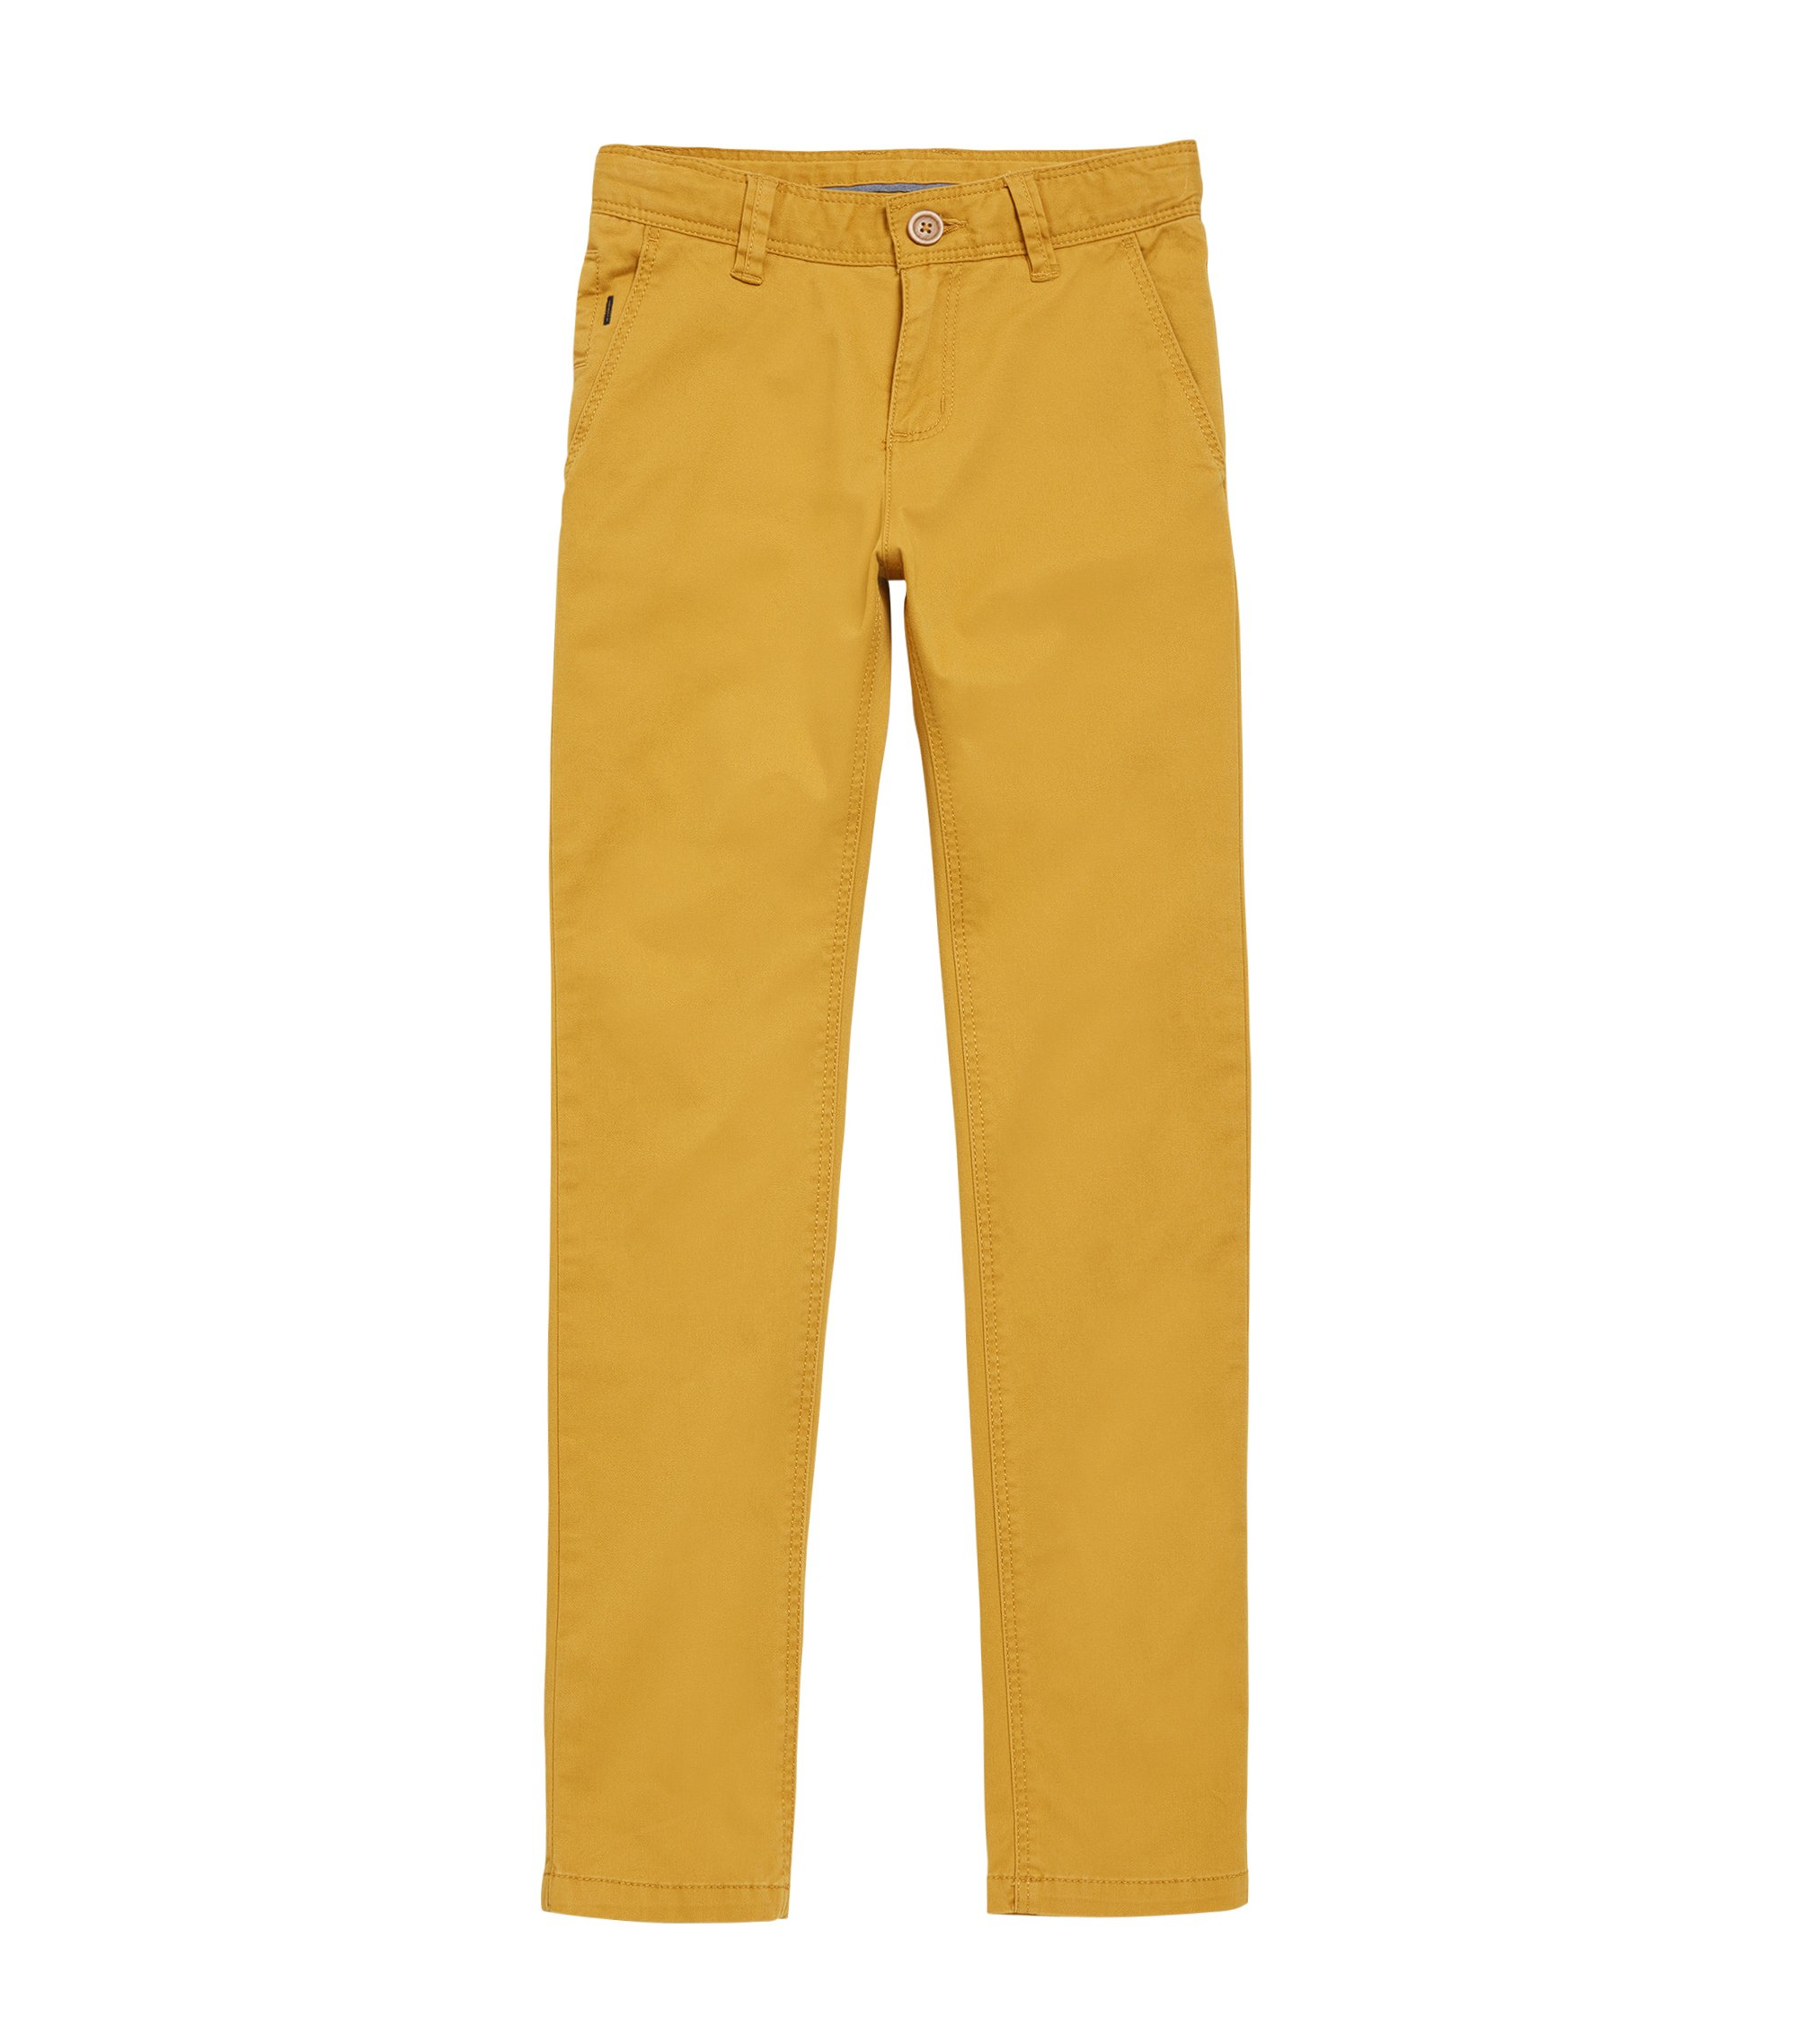 Chino uni pour enfant en coton stretch : « J24421 », Brun chiné